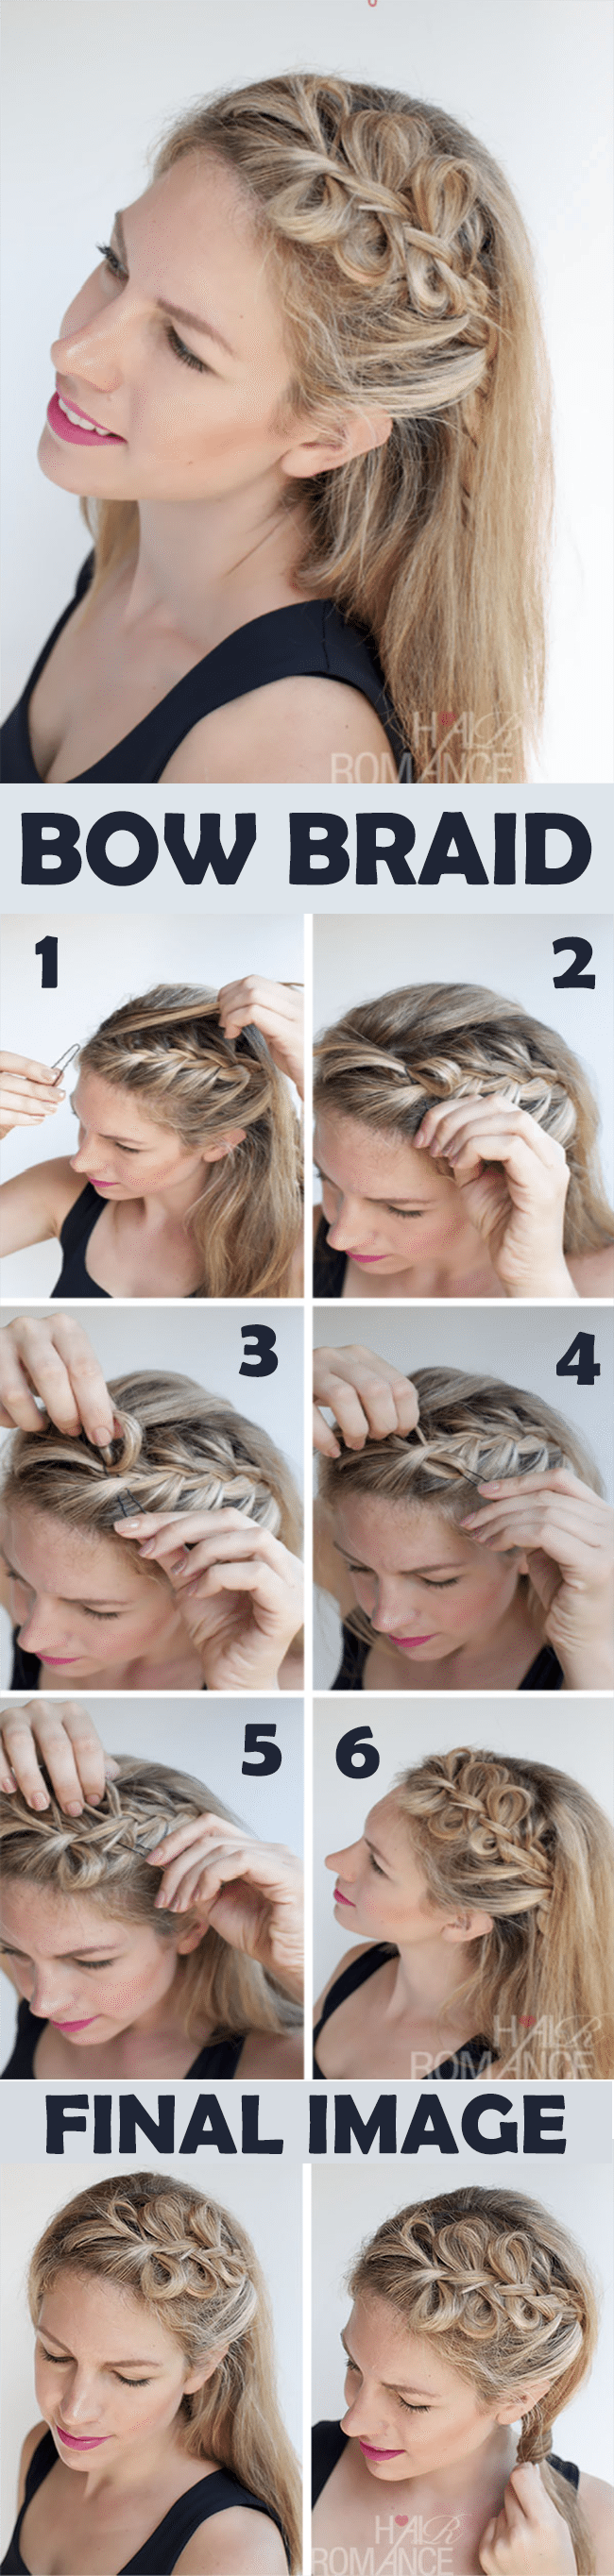 bow braid hairstyle